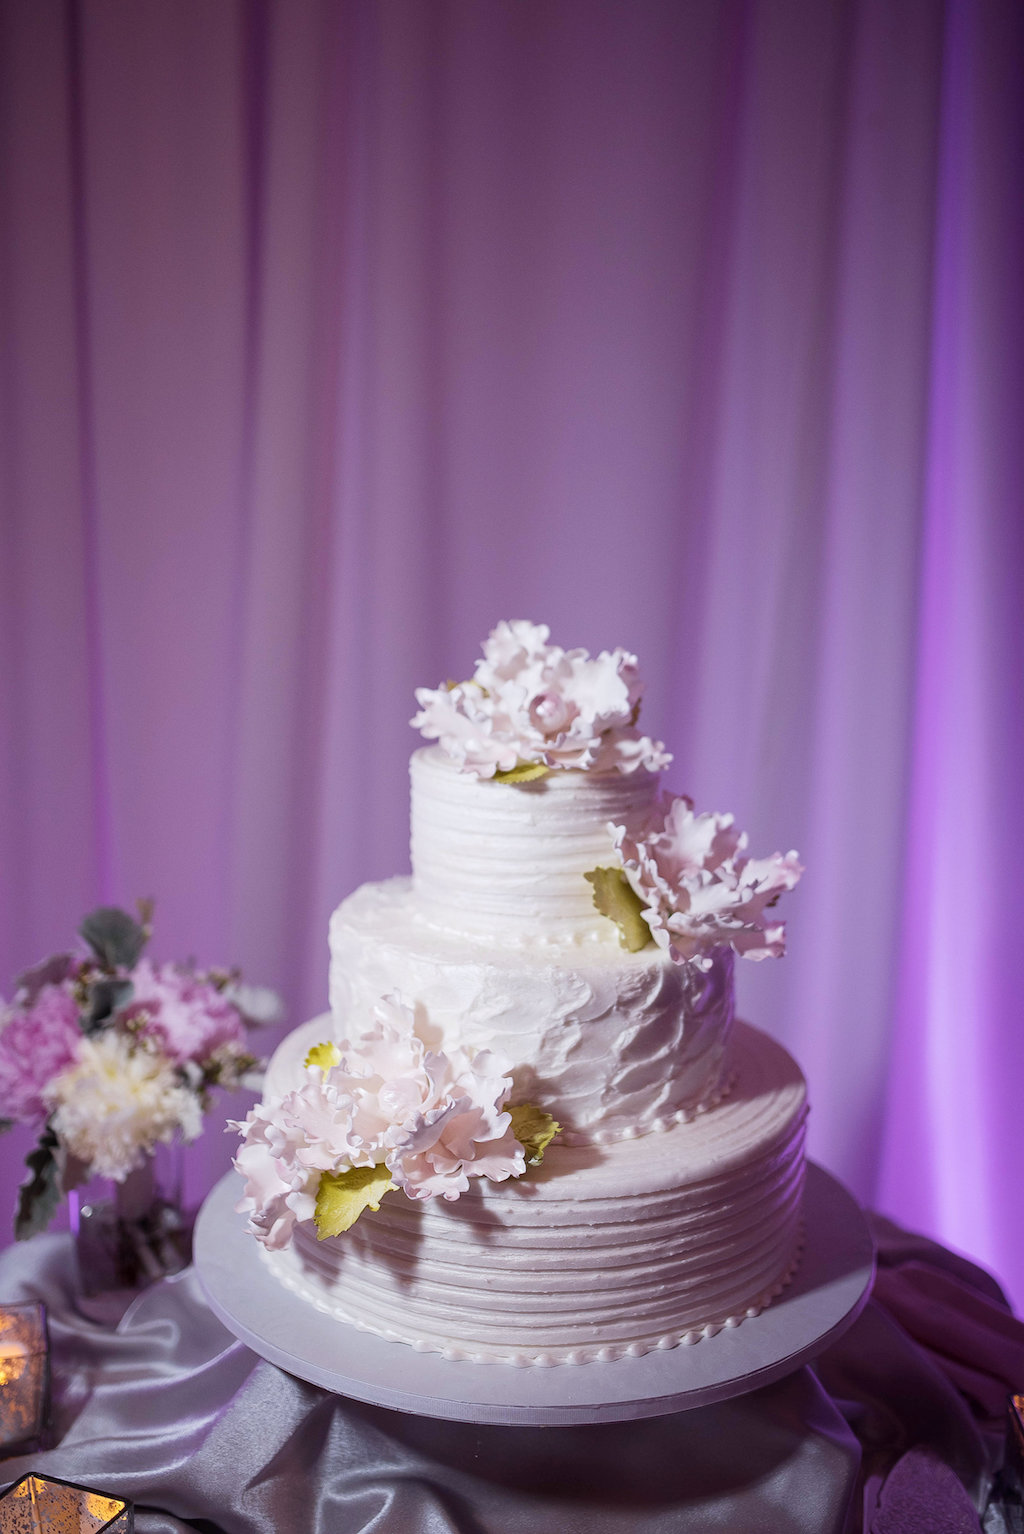 Three Tirered Round White Wedding Cake with Pink Paper Flowers with Gold LEaf Greenery on Gray Cake Stand, with Satin Table LInens White Draping and Purple Uplighting